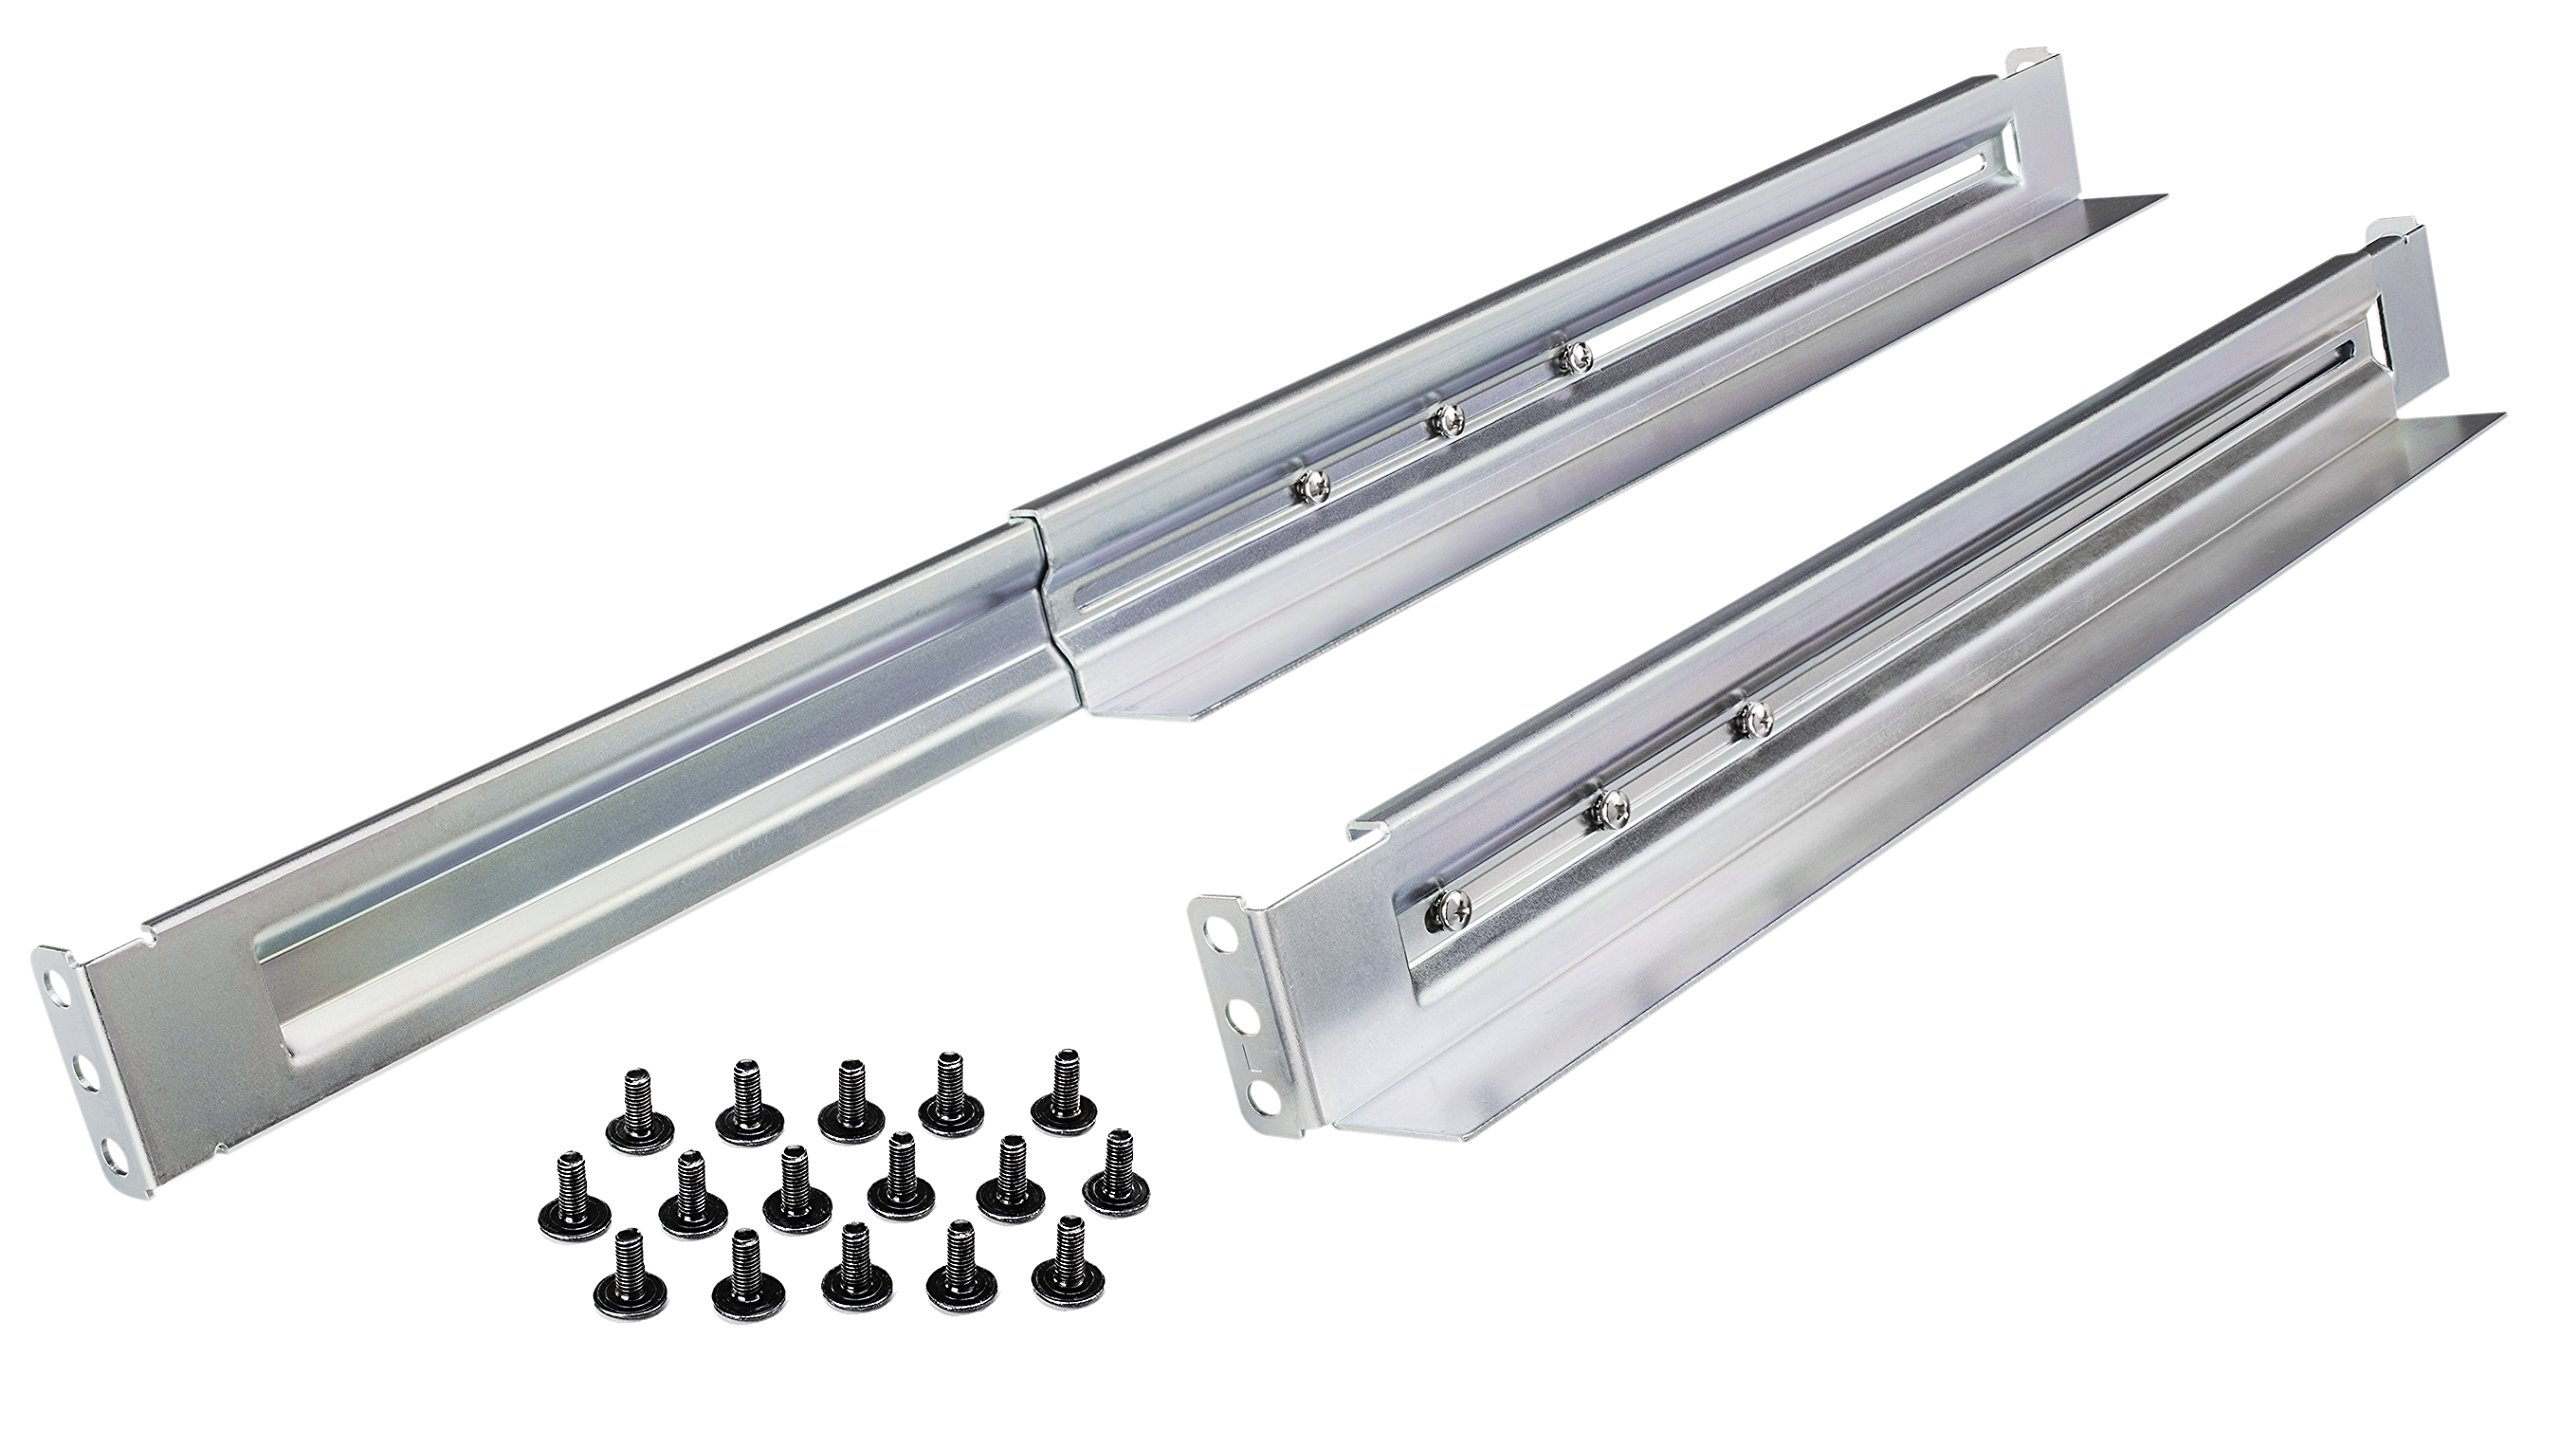 CyberPower 4POSTRAIL 4-Post Universal Rack Mount Rail Kit by CyberPower